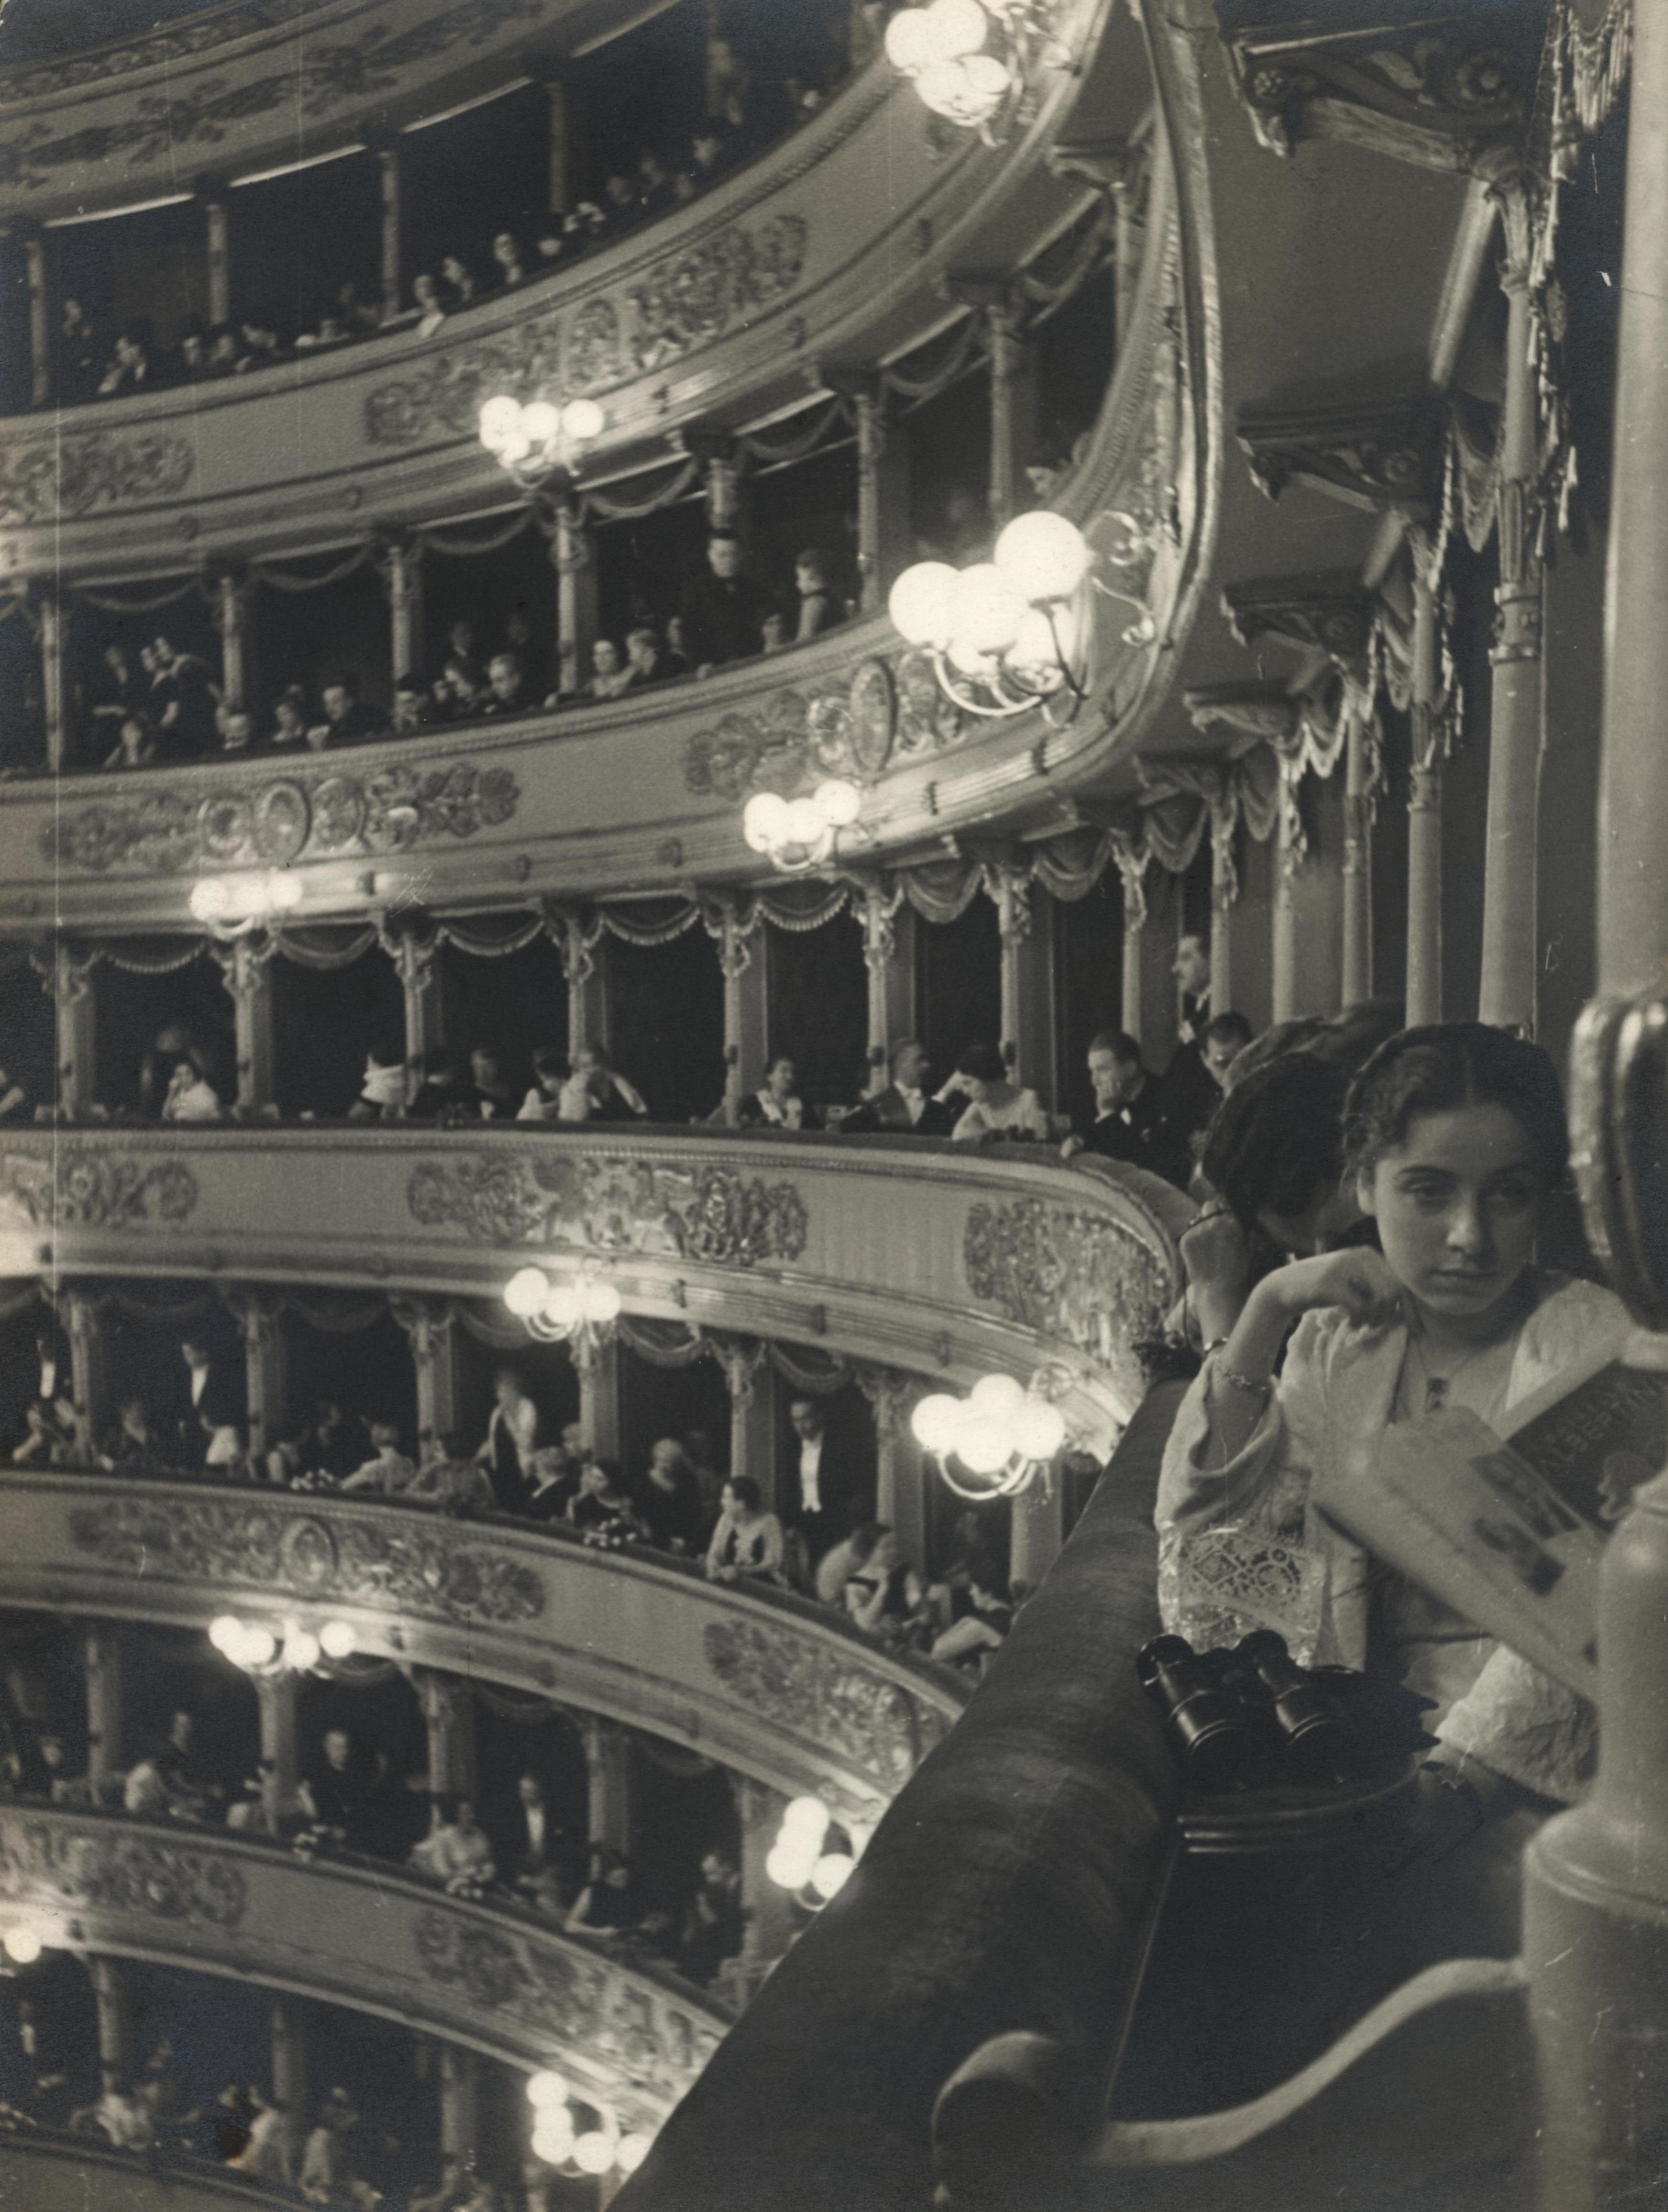 The big picture: Alfred Eisenstaedt's people-watching at the opera